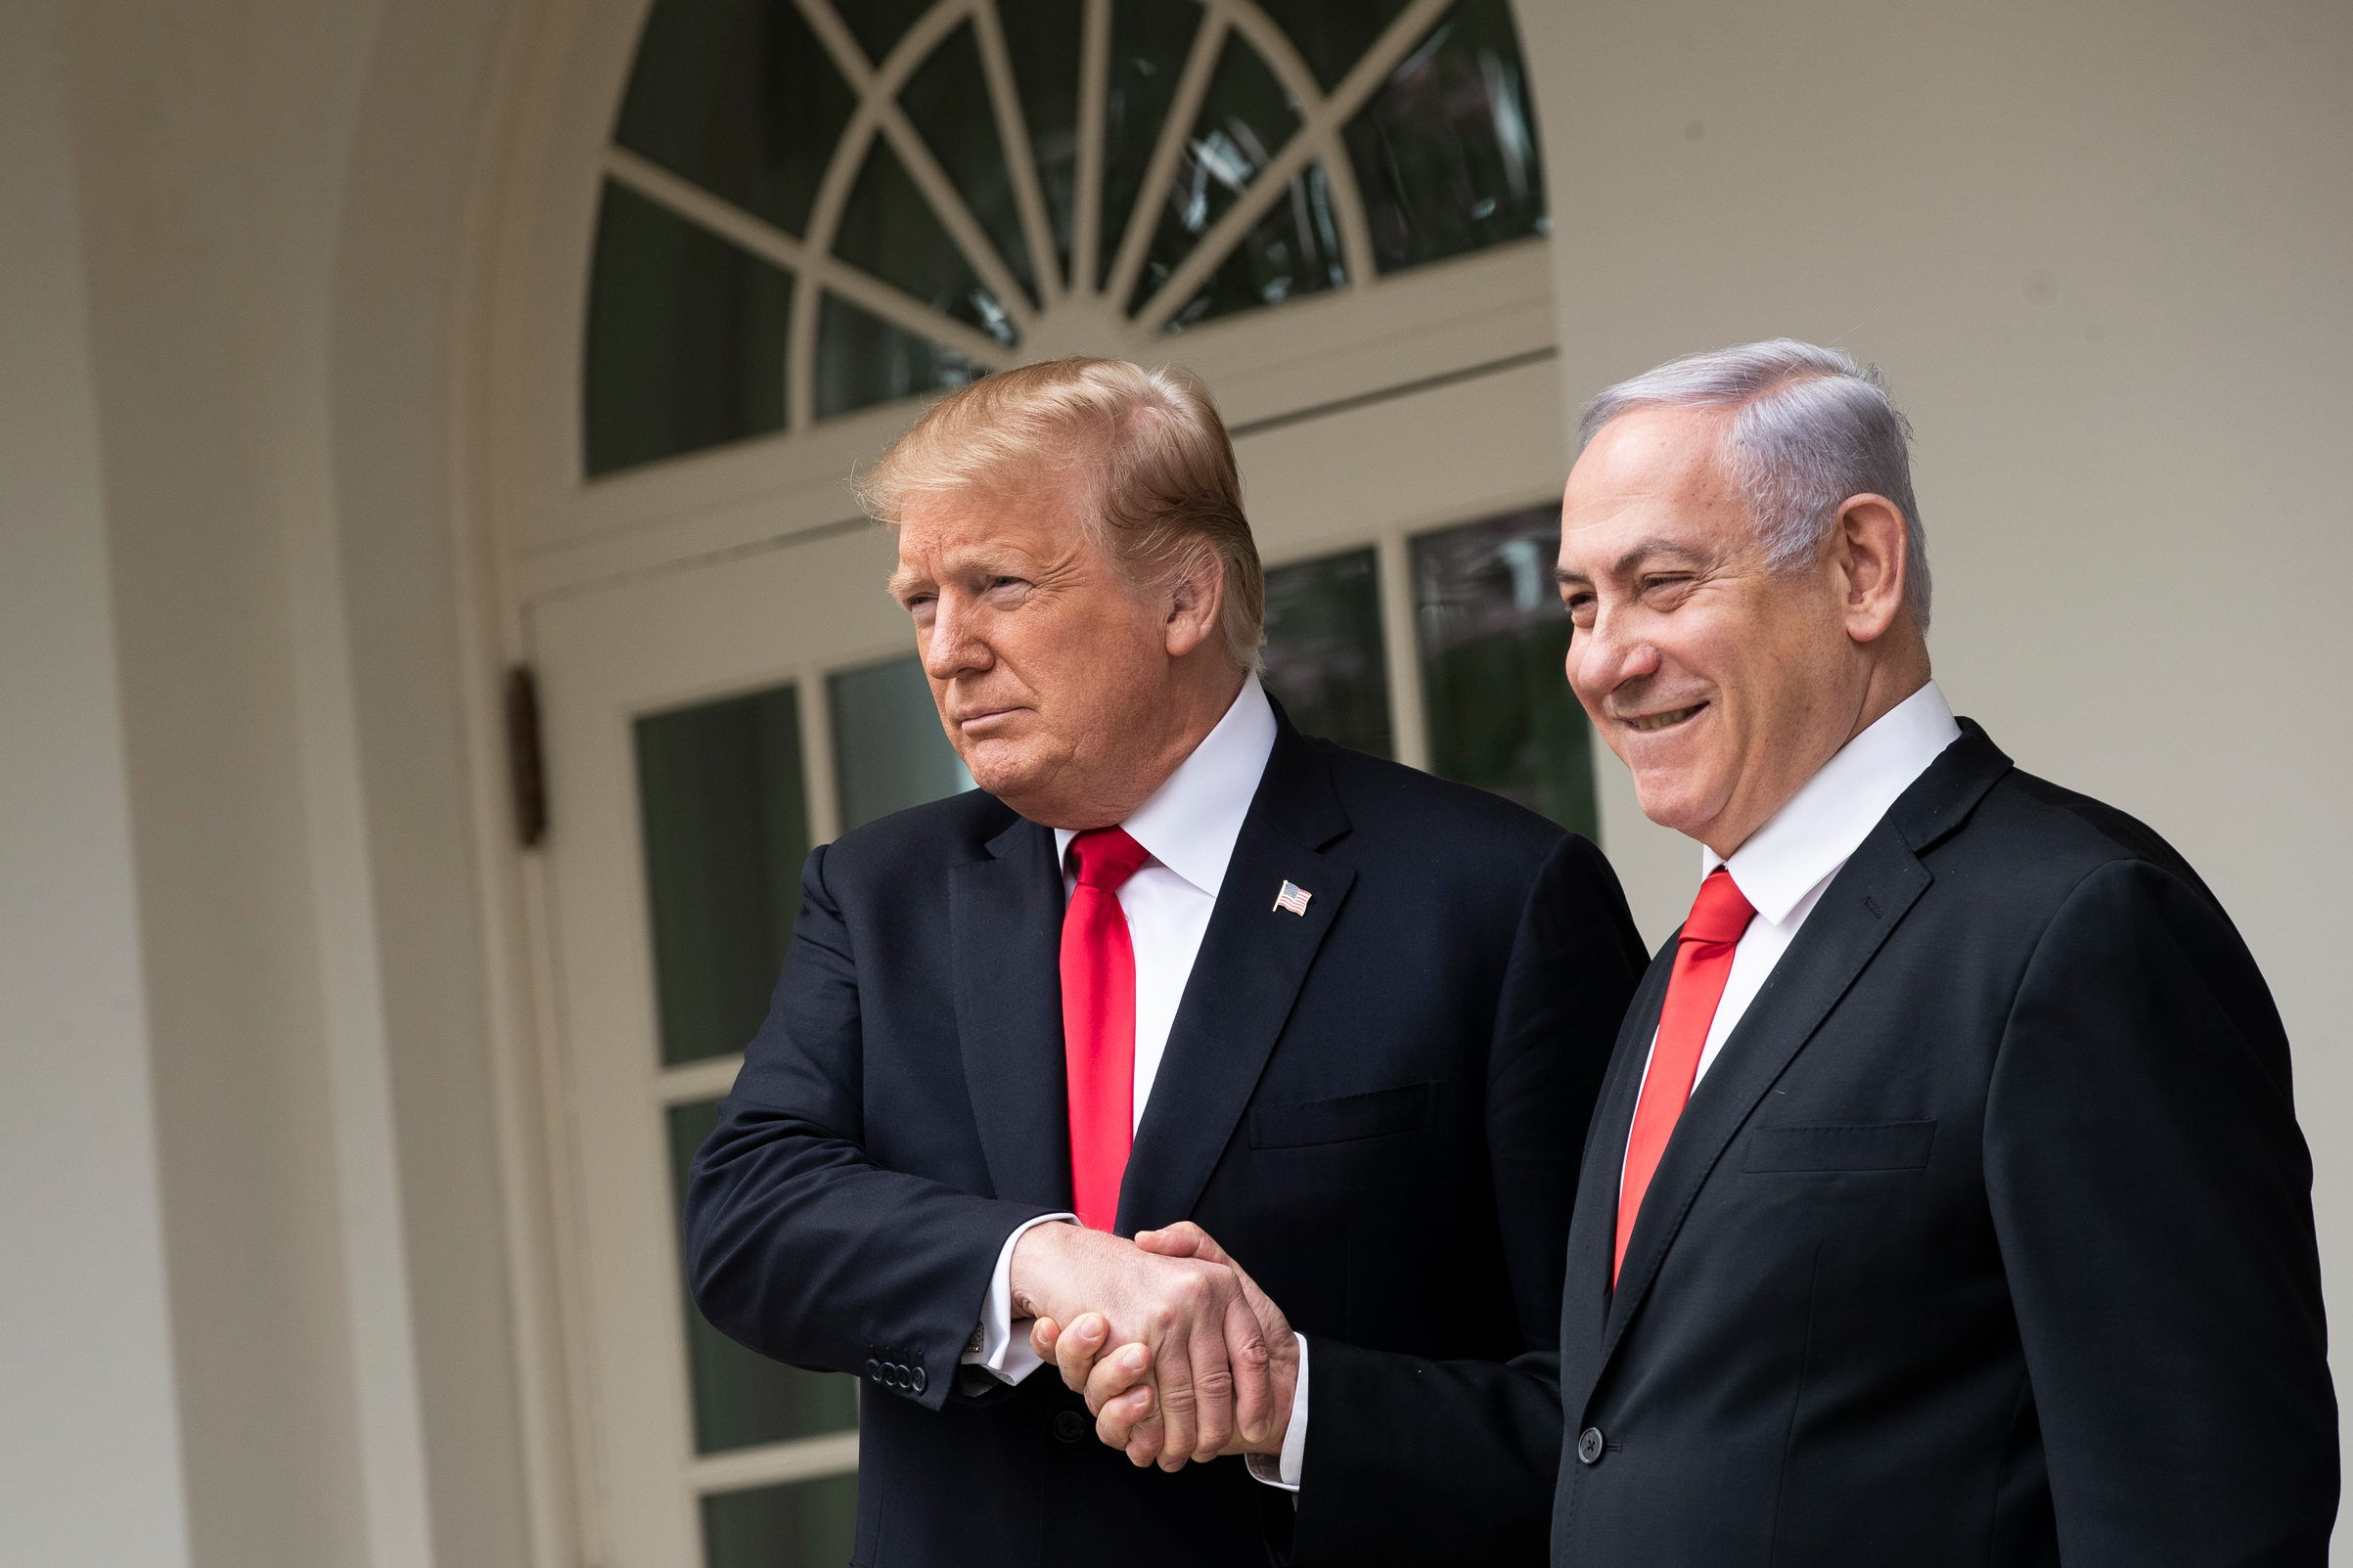 President Donald Trump and Prime Minister of Israel Benjamin Netanyahu shake hands while walking through the colonnade prior to an Oval Office meeting at the White House March 25, 2019 in Washington, D.C.